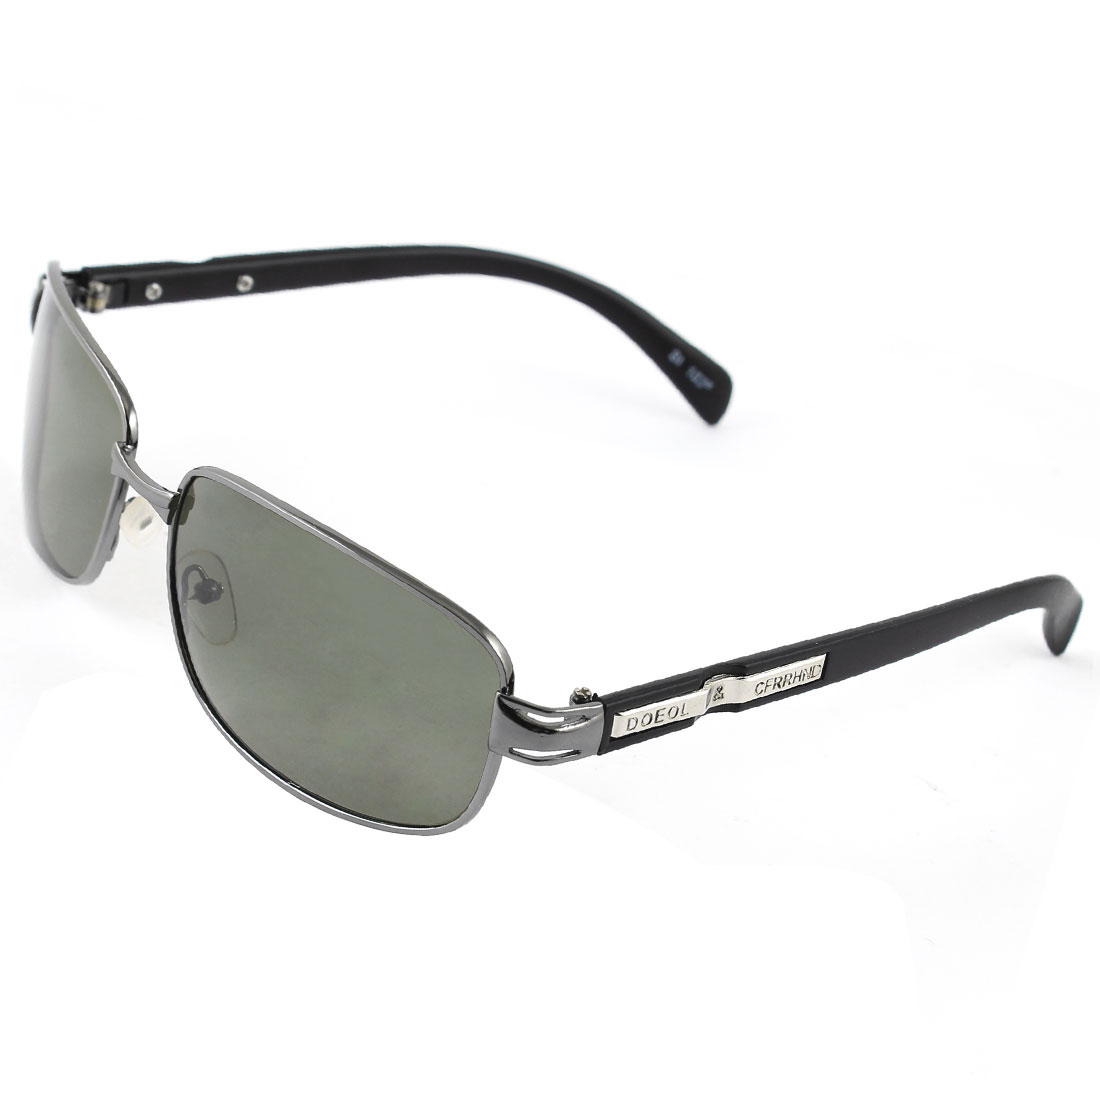 Metal Decor Plastic Arms Single Bridge Black Full Rim Frame Rectangle Shaped Gray Lens Leisure Polarized Sun Glasses for Man